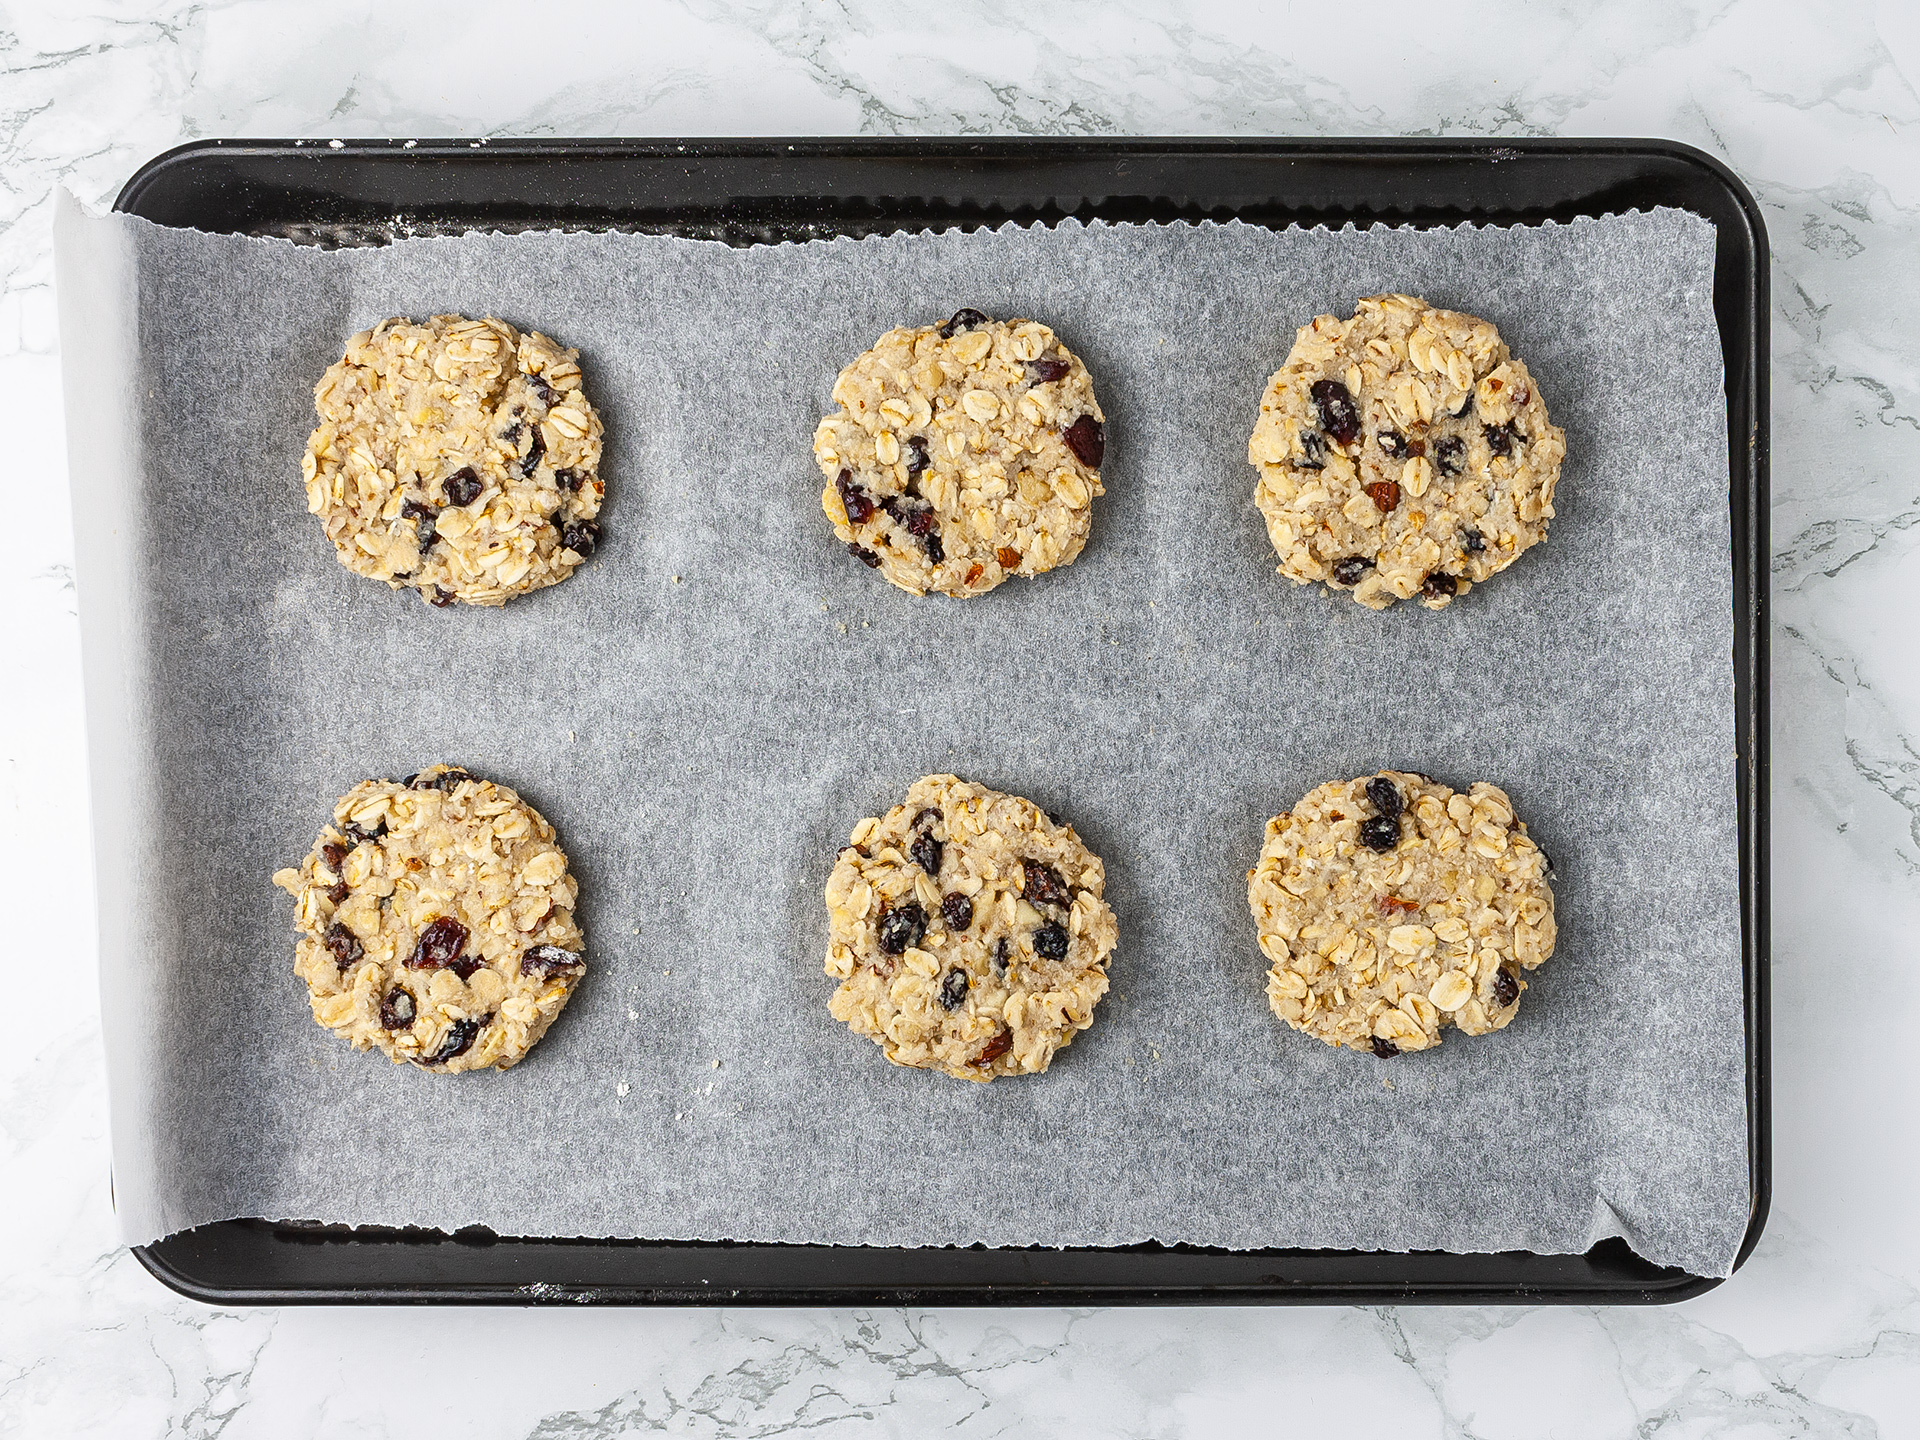 Raw vegan applesauce dough shaped into cookies on a tray